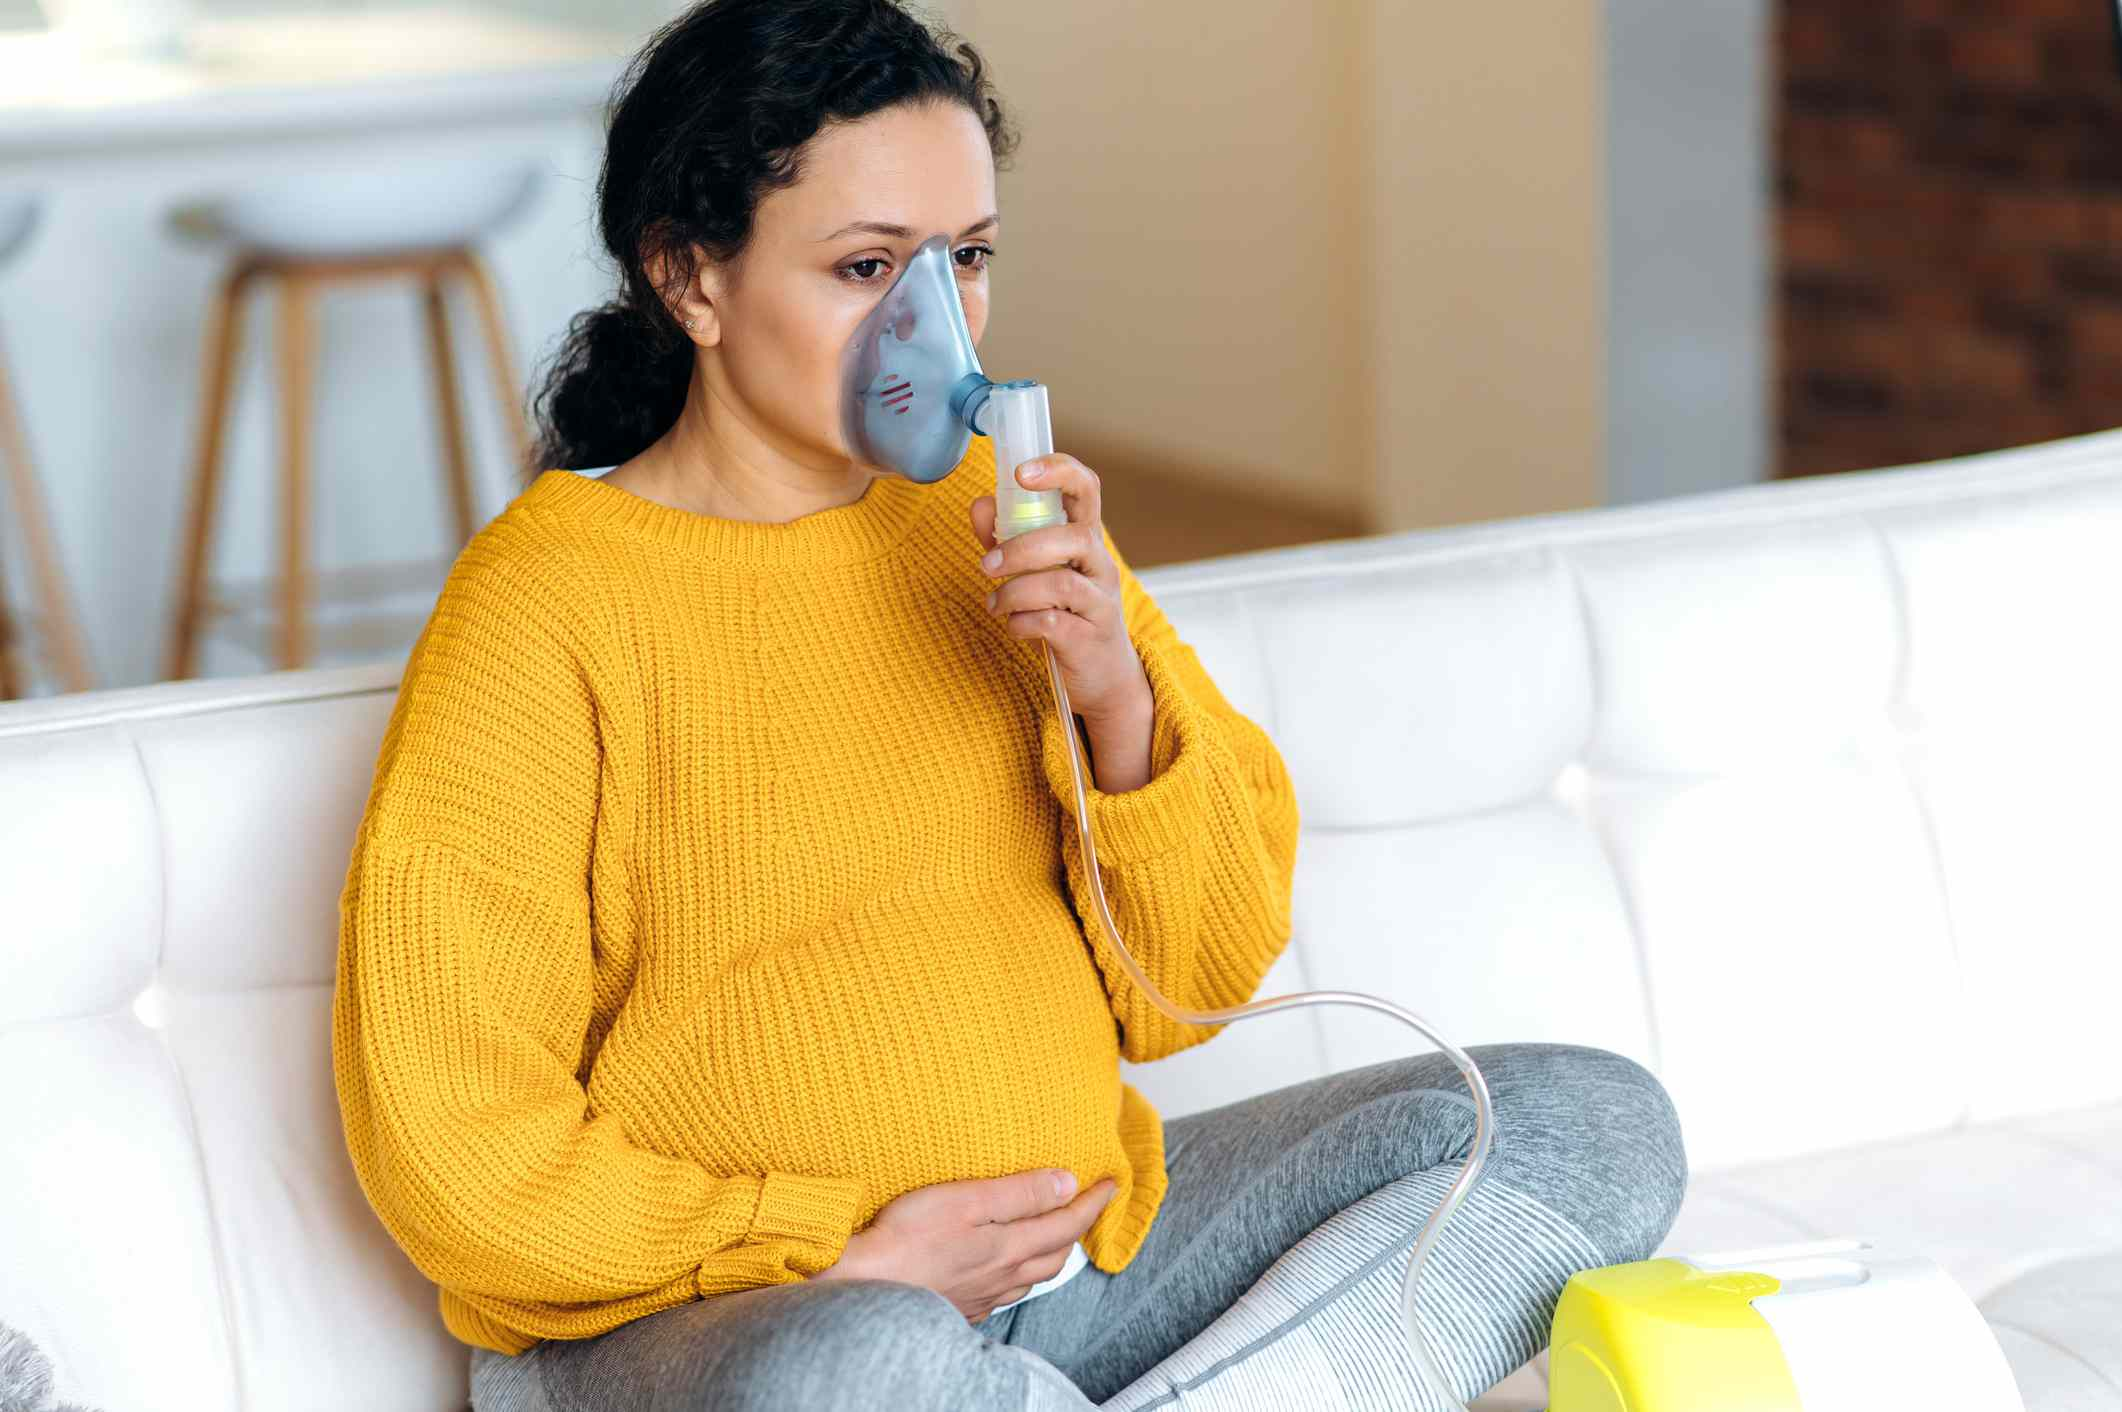 woman using an inhaler with a spacer